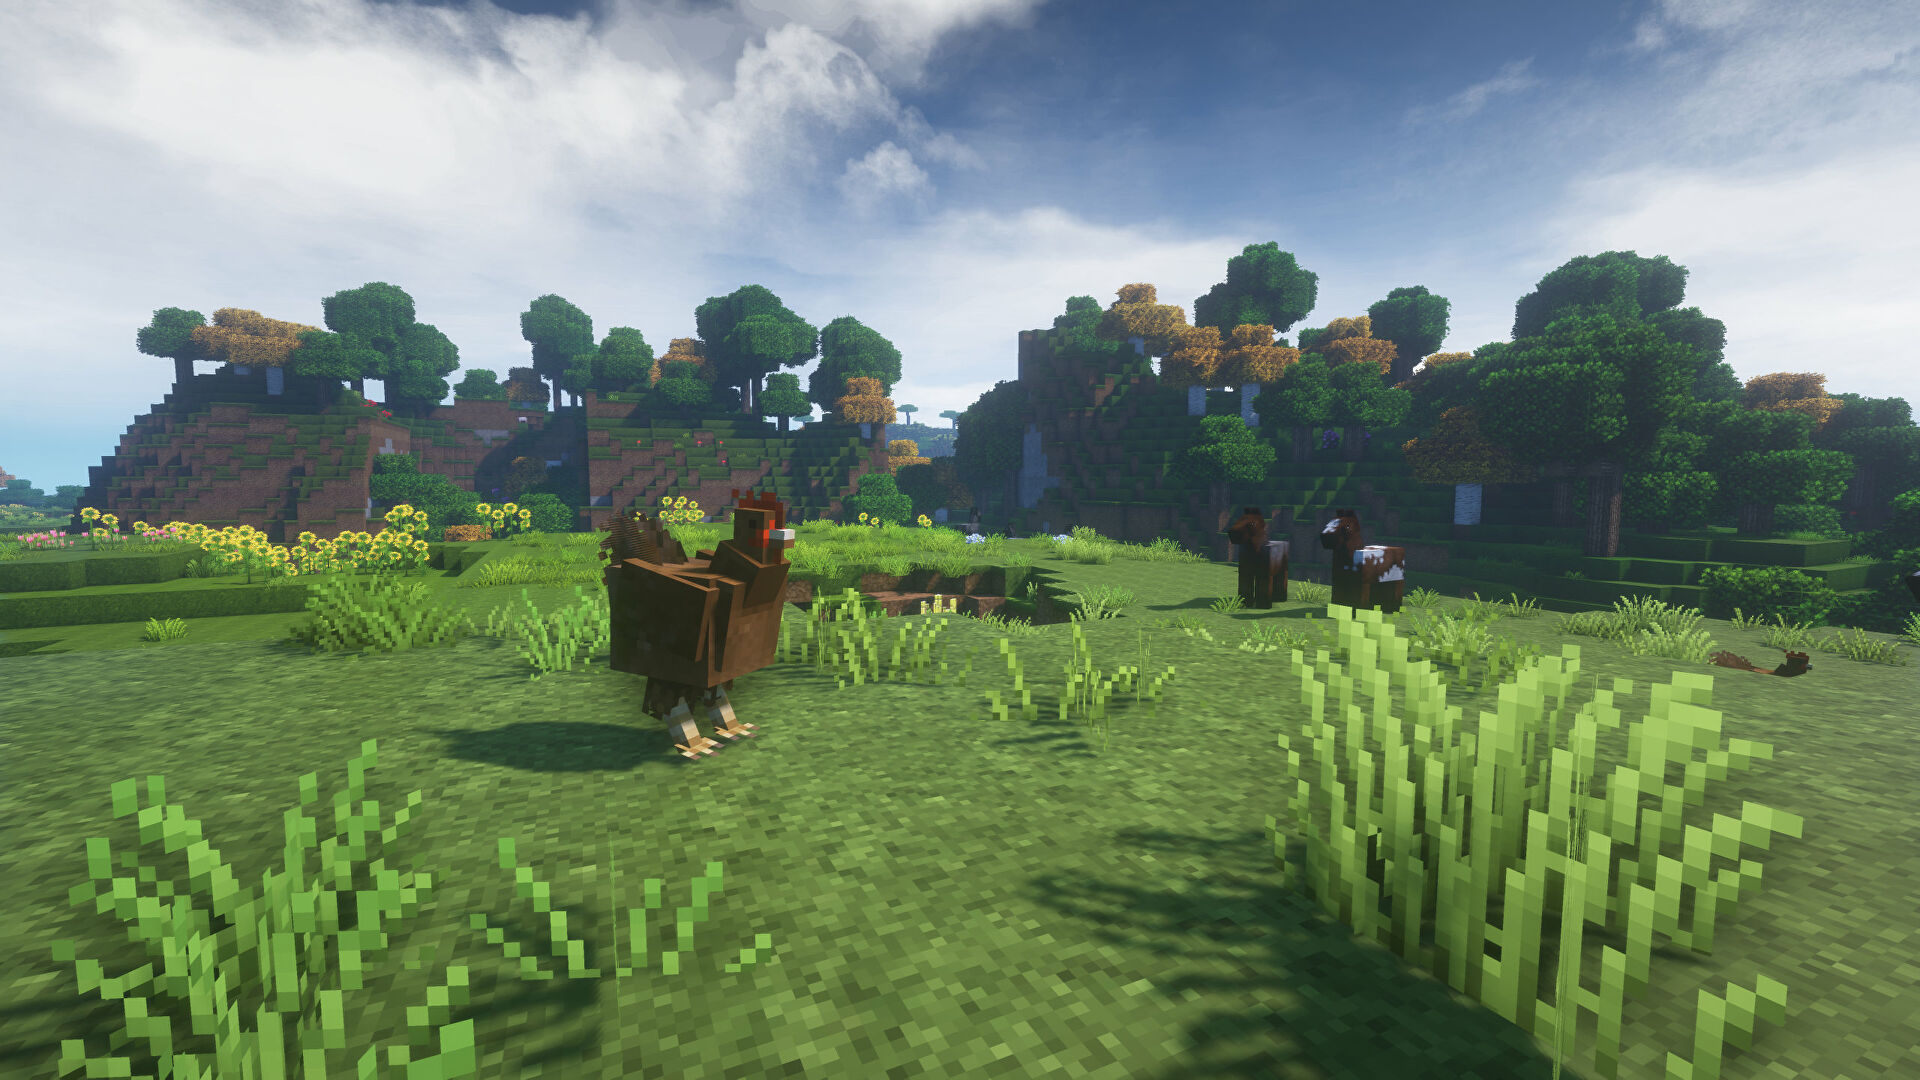 A Minecraft screenshot of a landscape displayed using the Jicklus Texture Pack.